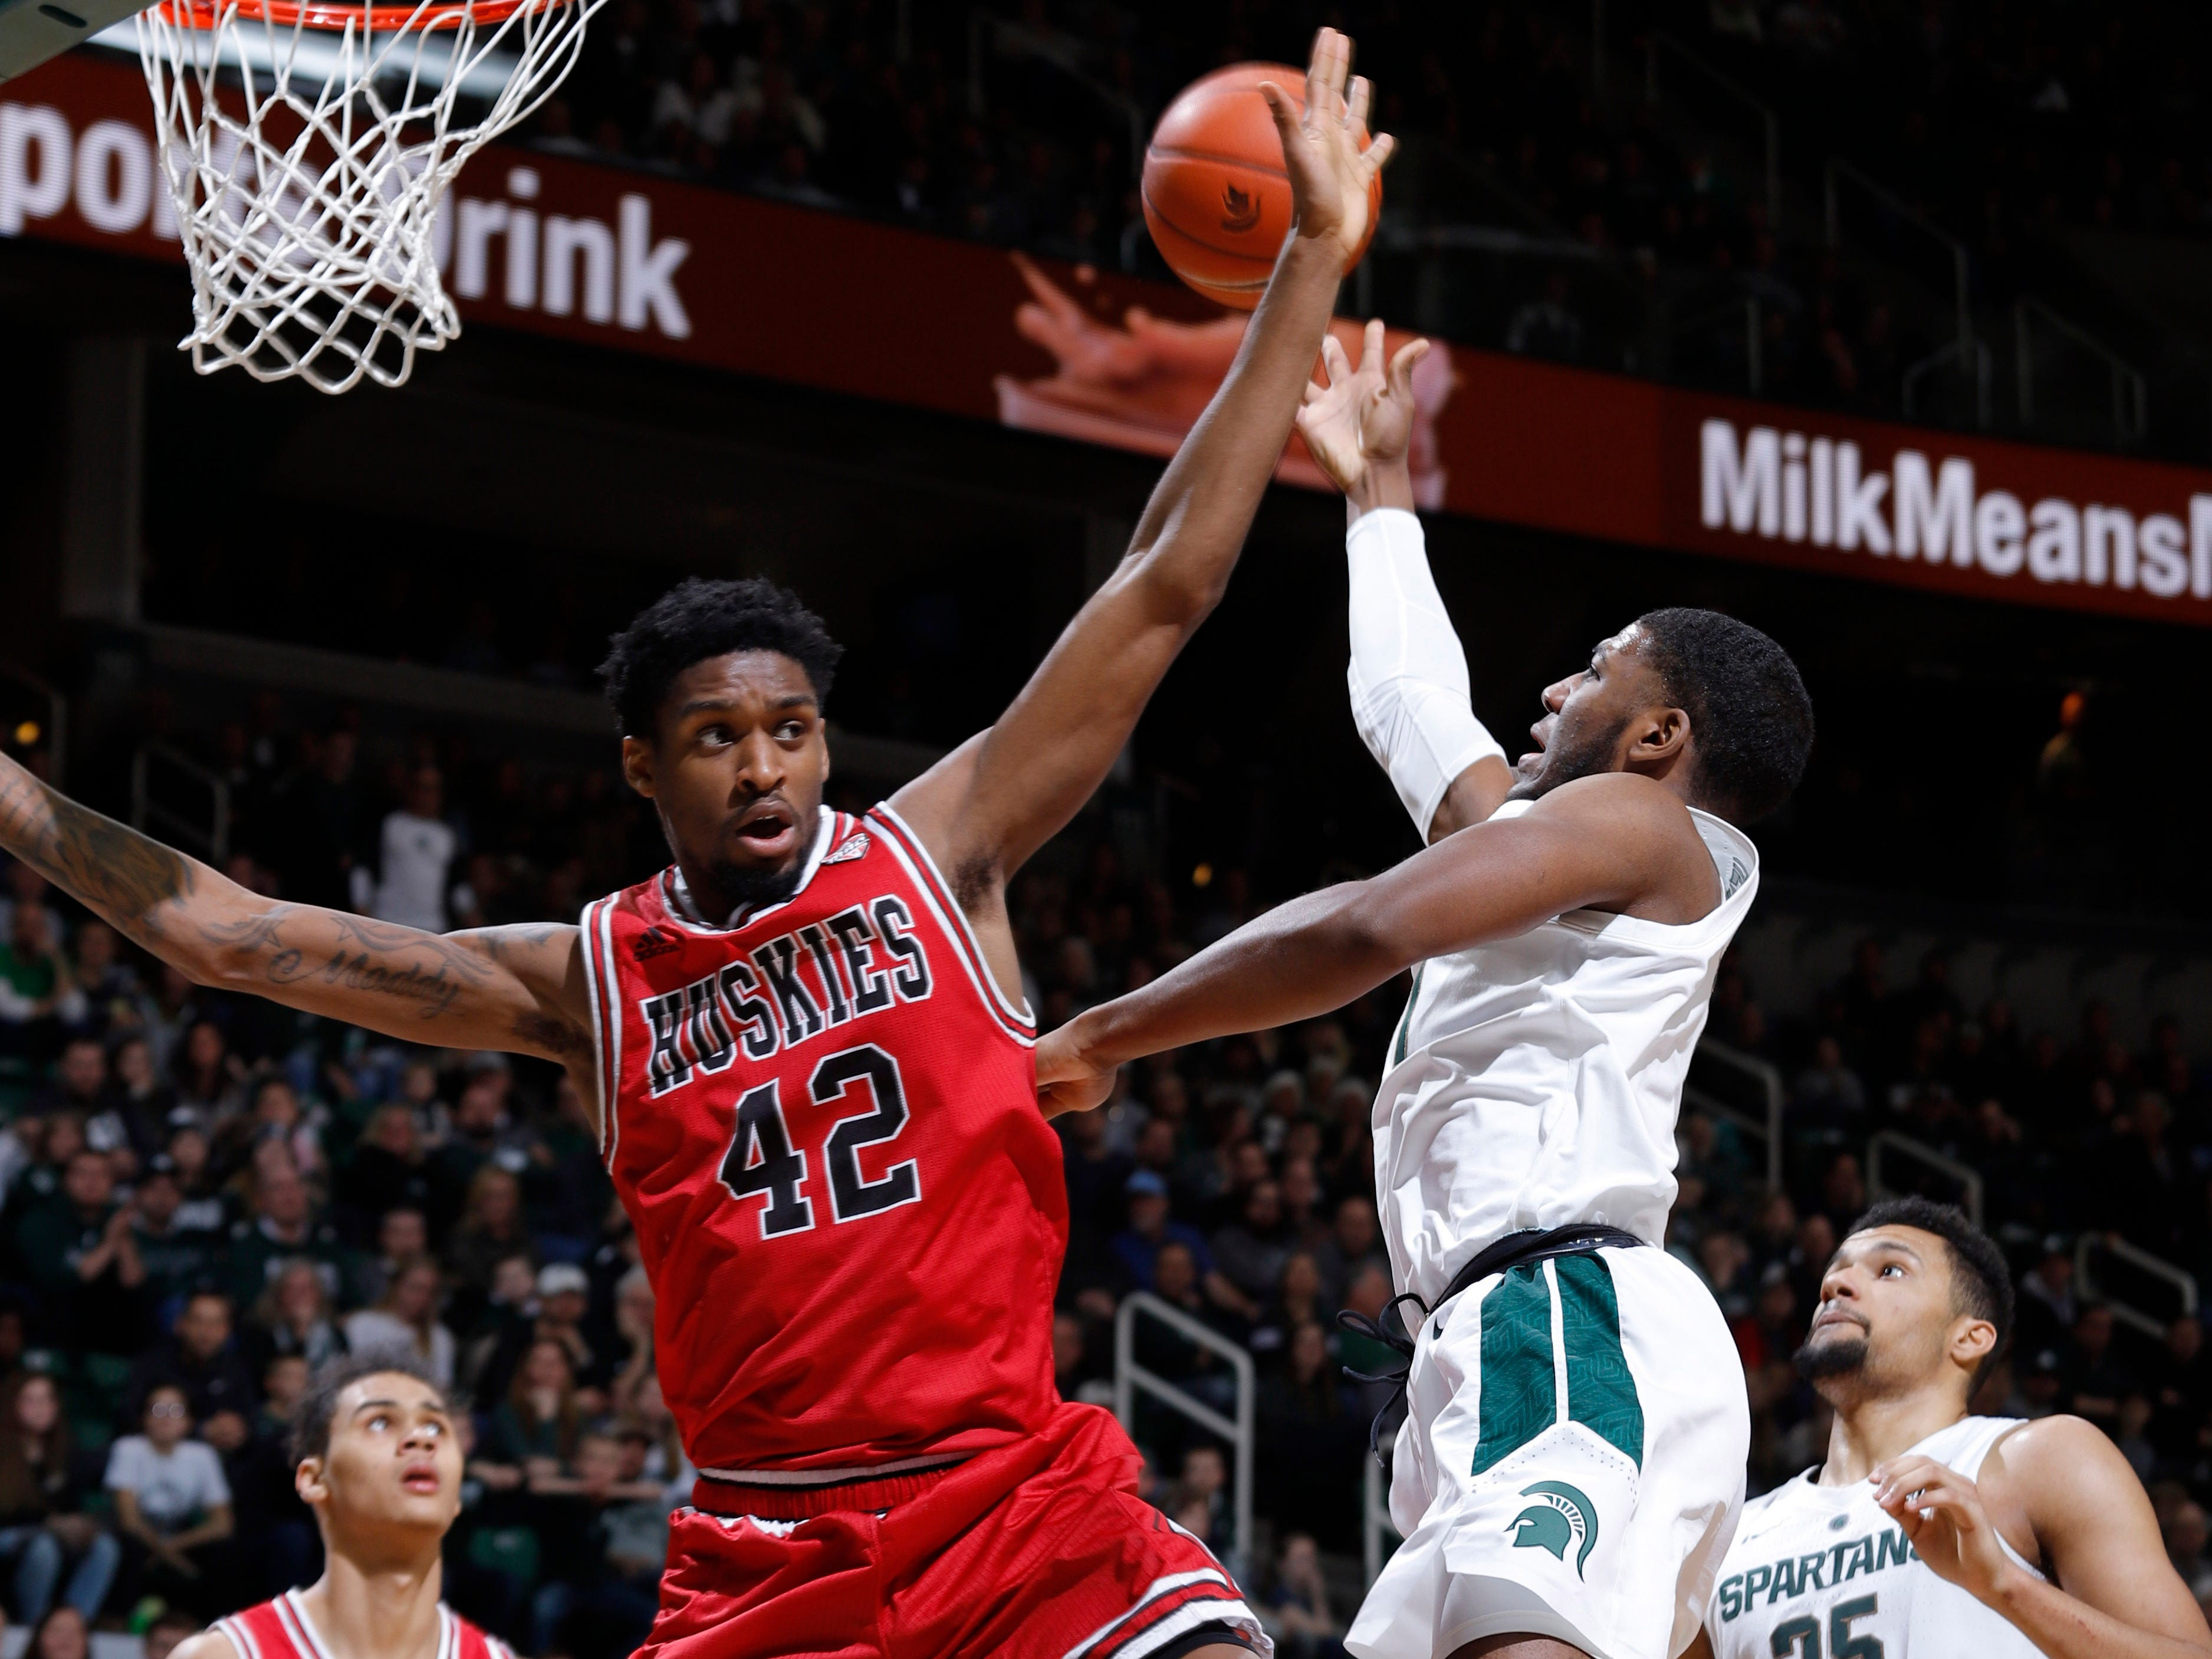 Michigan State's Aaron Henry, right, goes up for a shot against Northern Illinois' Levi Bradley (42), Saturday, Dec. 29, 2018, in East Lansing, Mich.